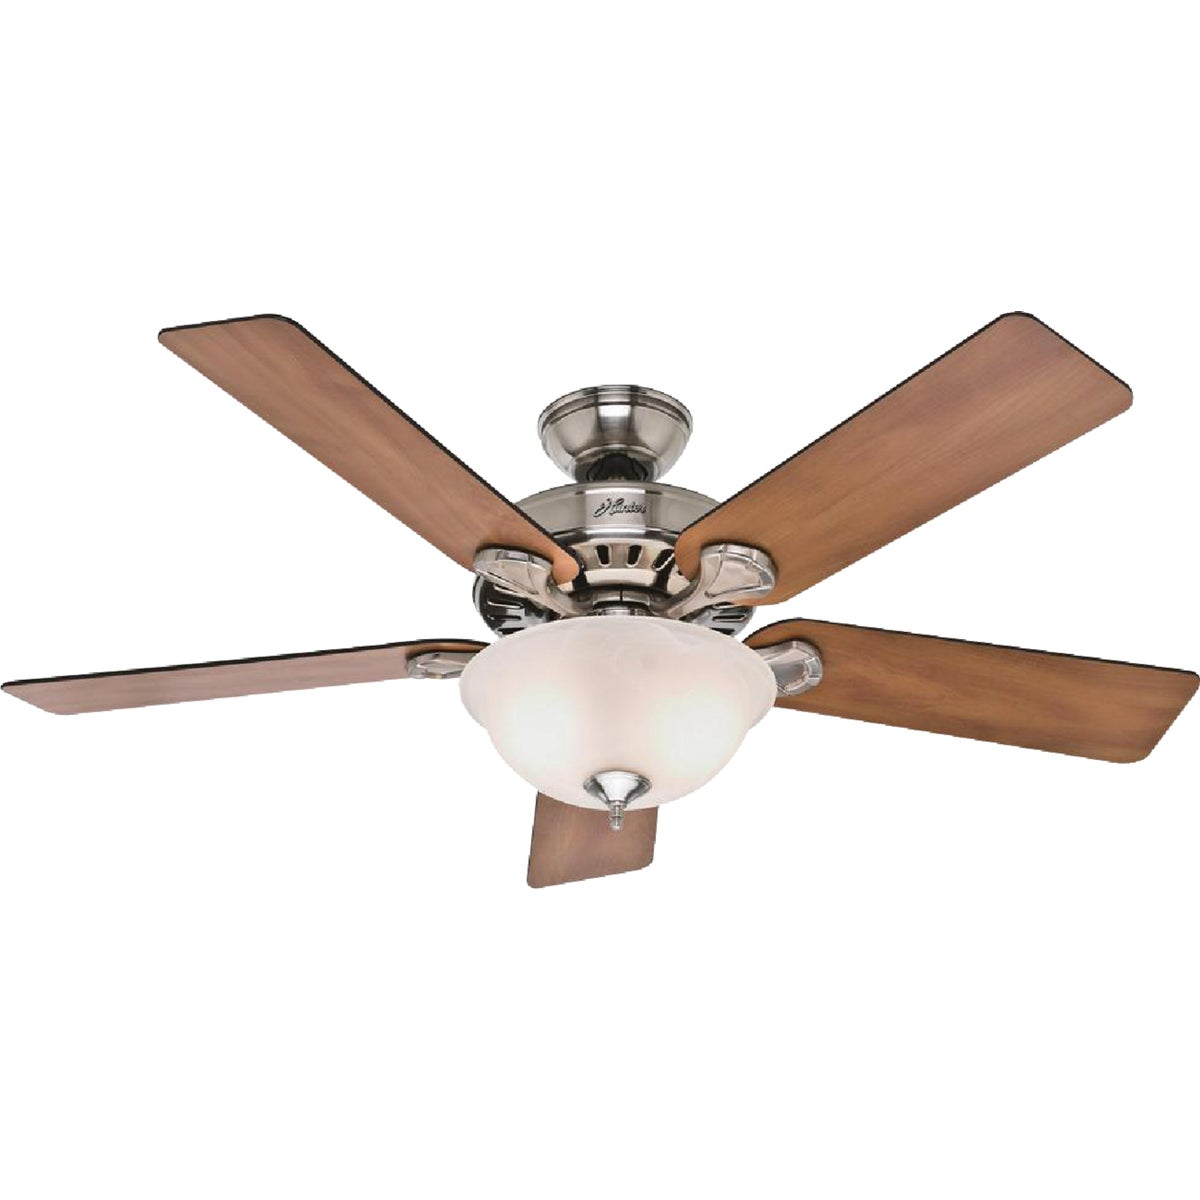 "52"" BR NICKEL FAN W/LT - 53249 by Hunter Fan Co"